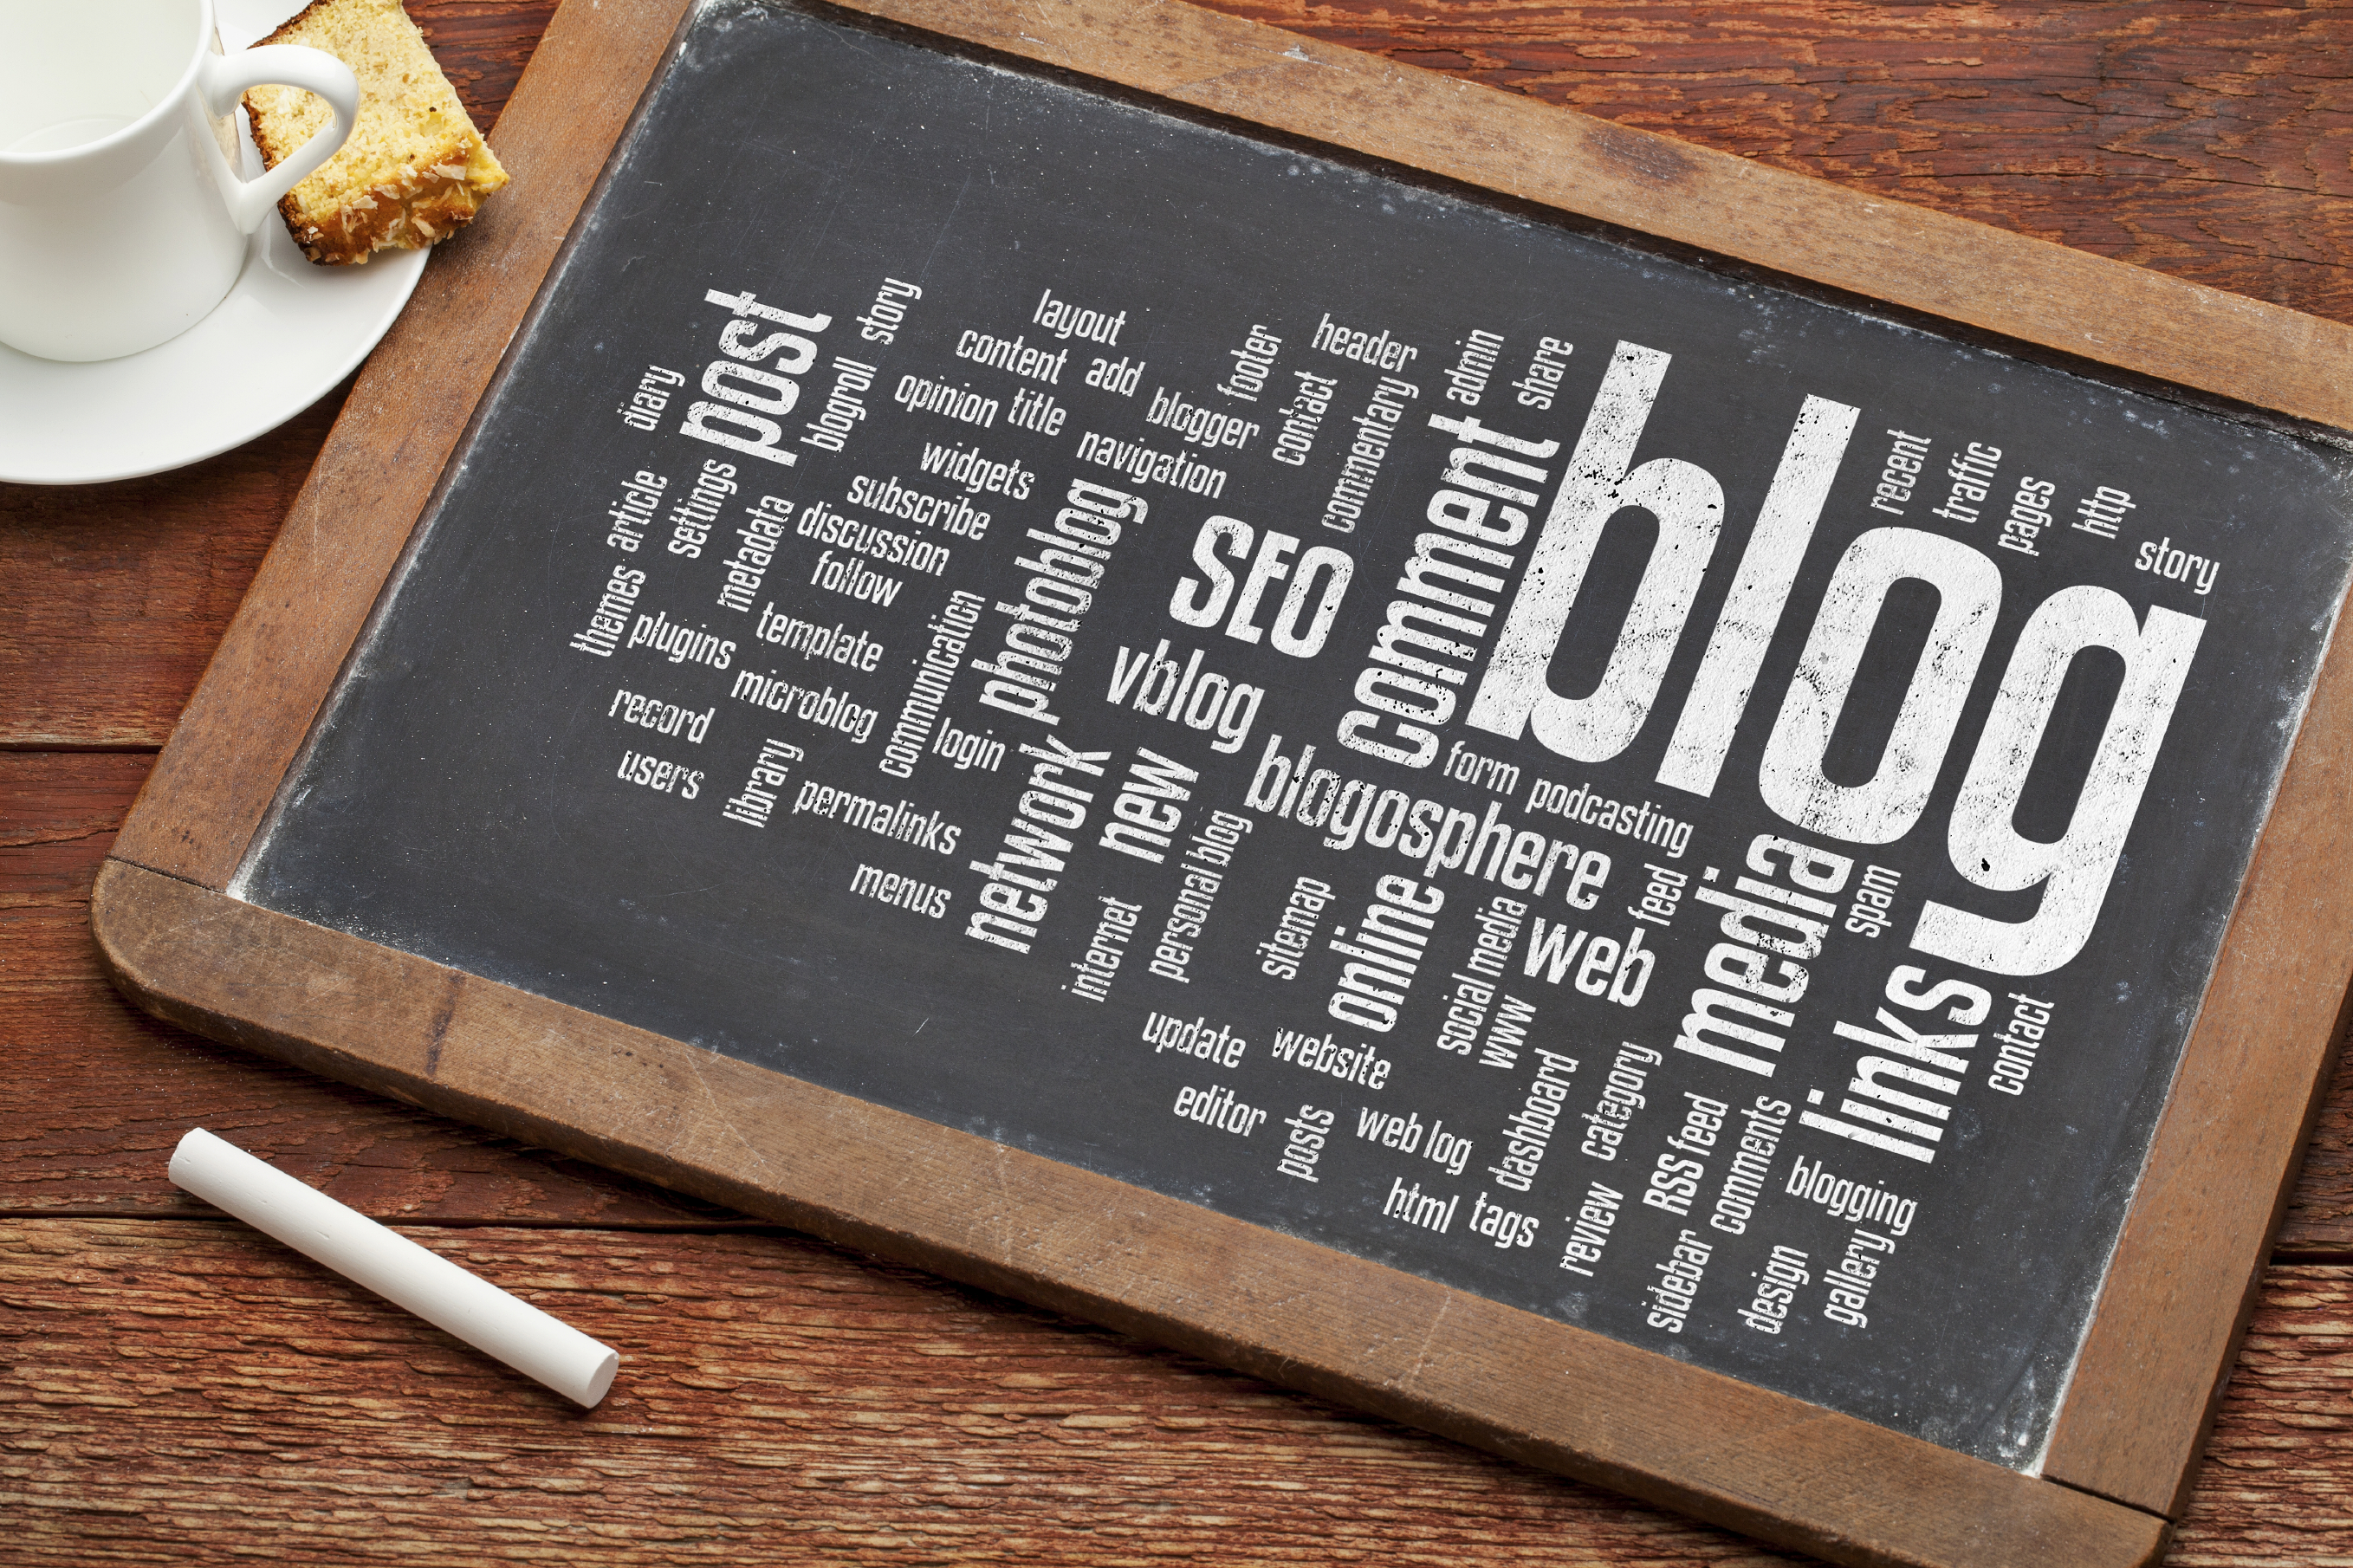 Top 10 Tips for Creating the Perfect Blog Post - WSI Digital Marketing